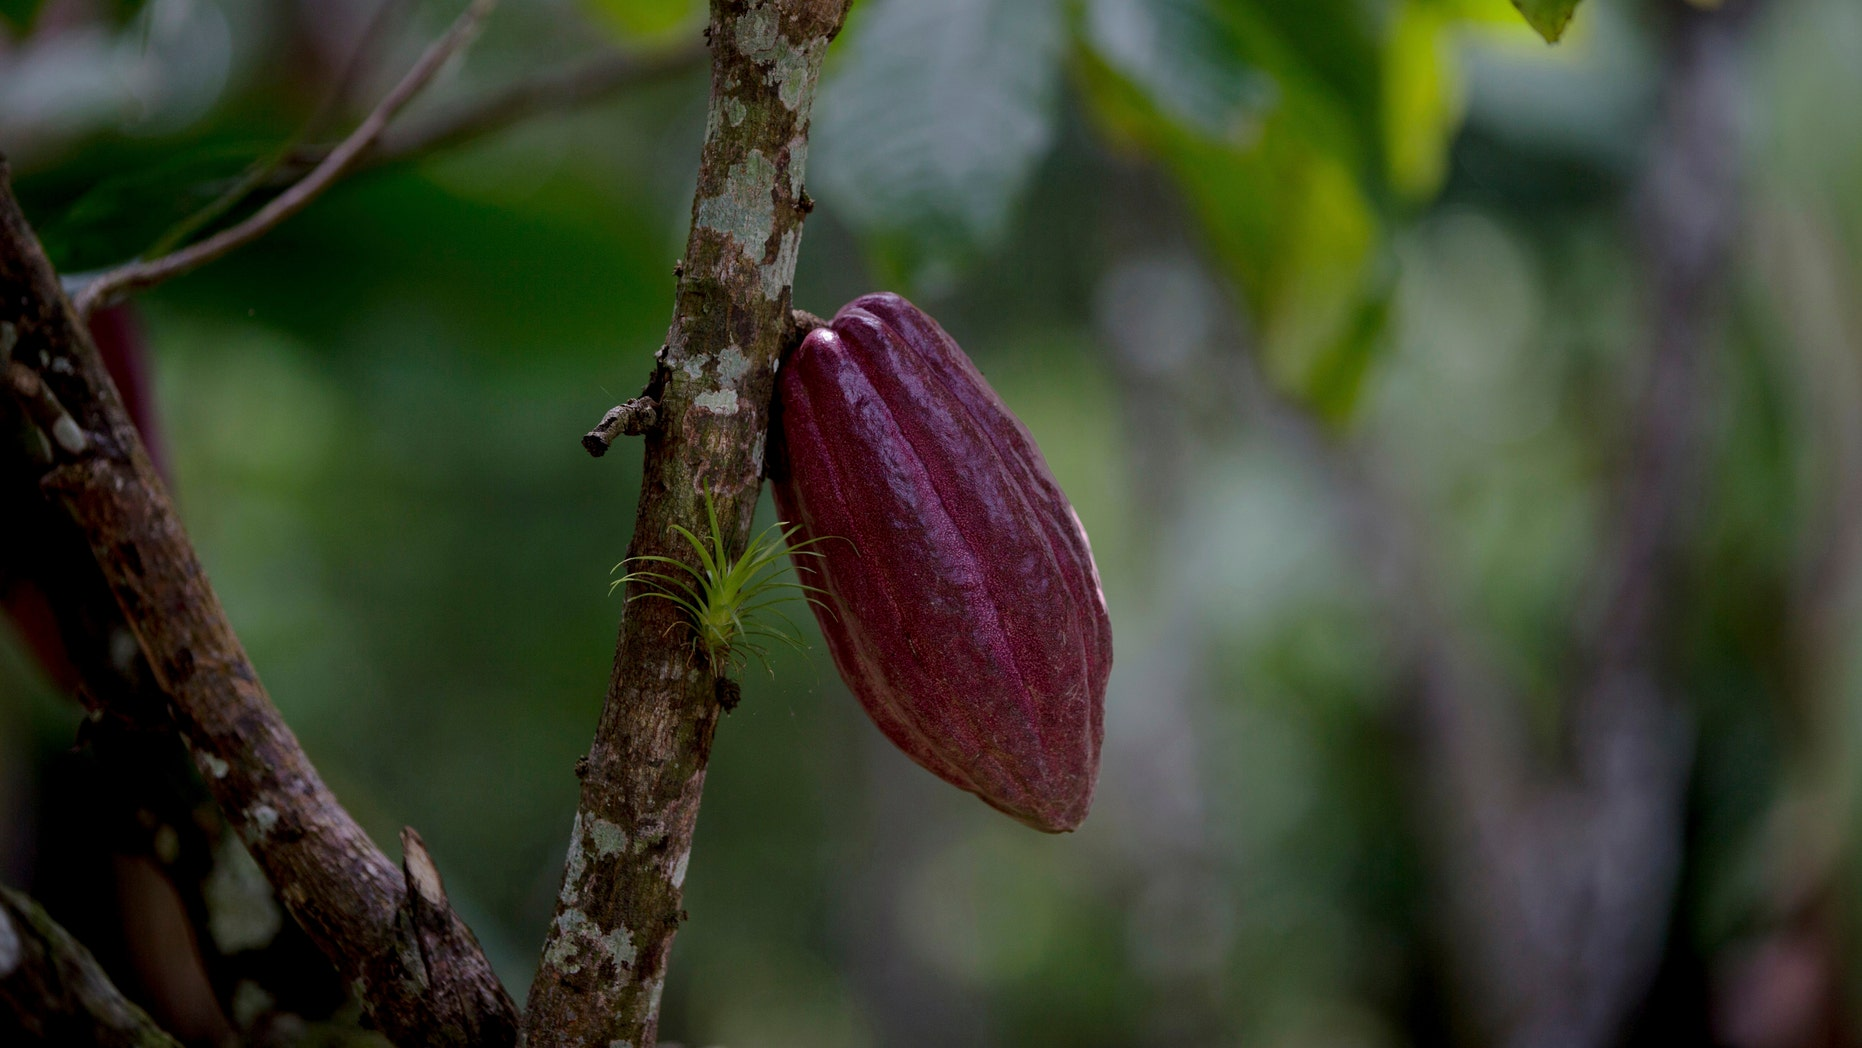 In this April 16, 2015 file photo, a cacao pod hangs from a tree at the Agropampatar chocolate farm co-op in El Clavo, Venezuela. (AP Photo/Fernando Llano)